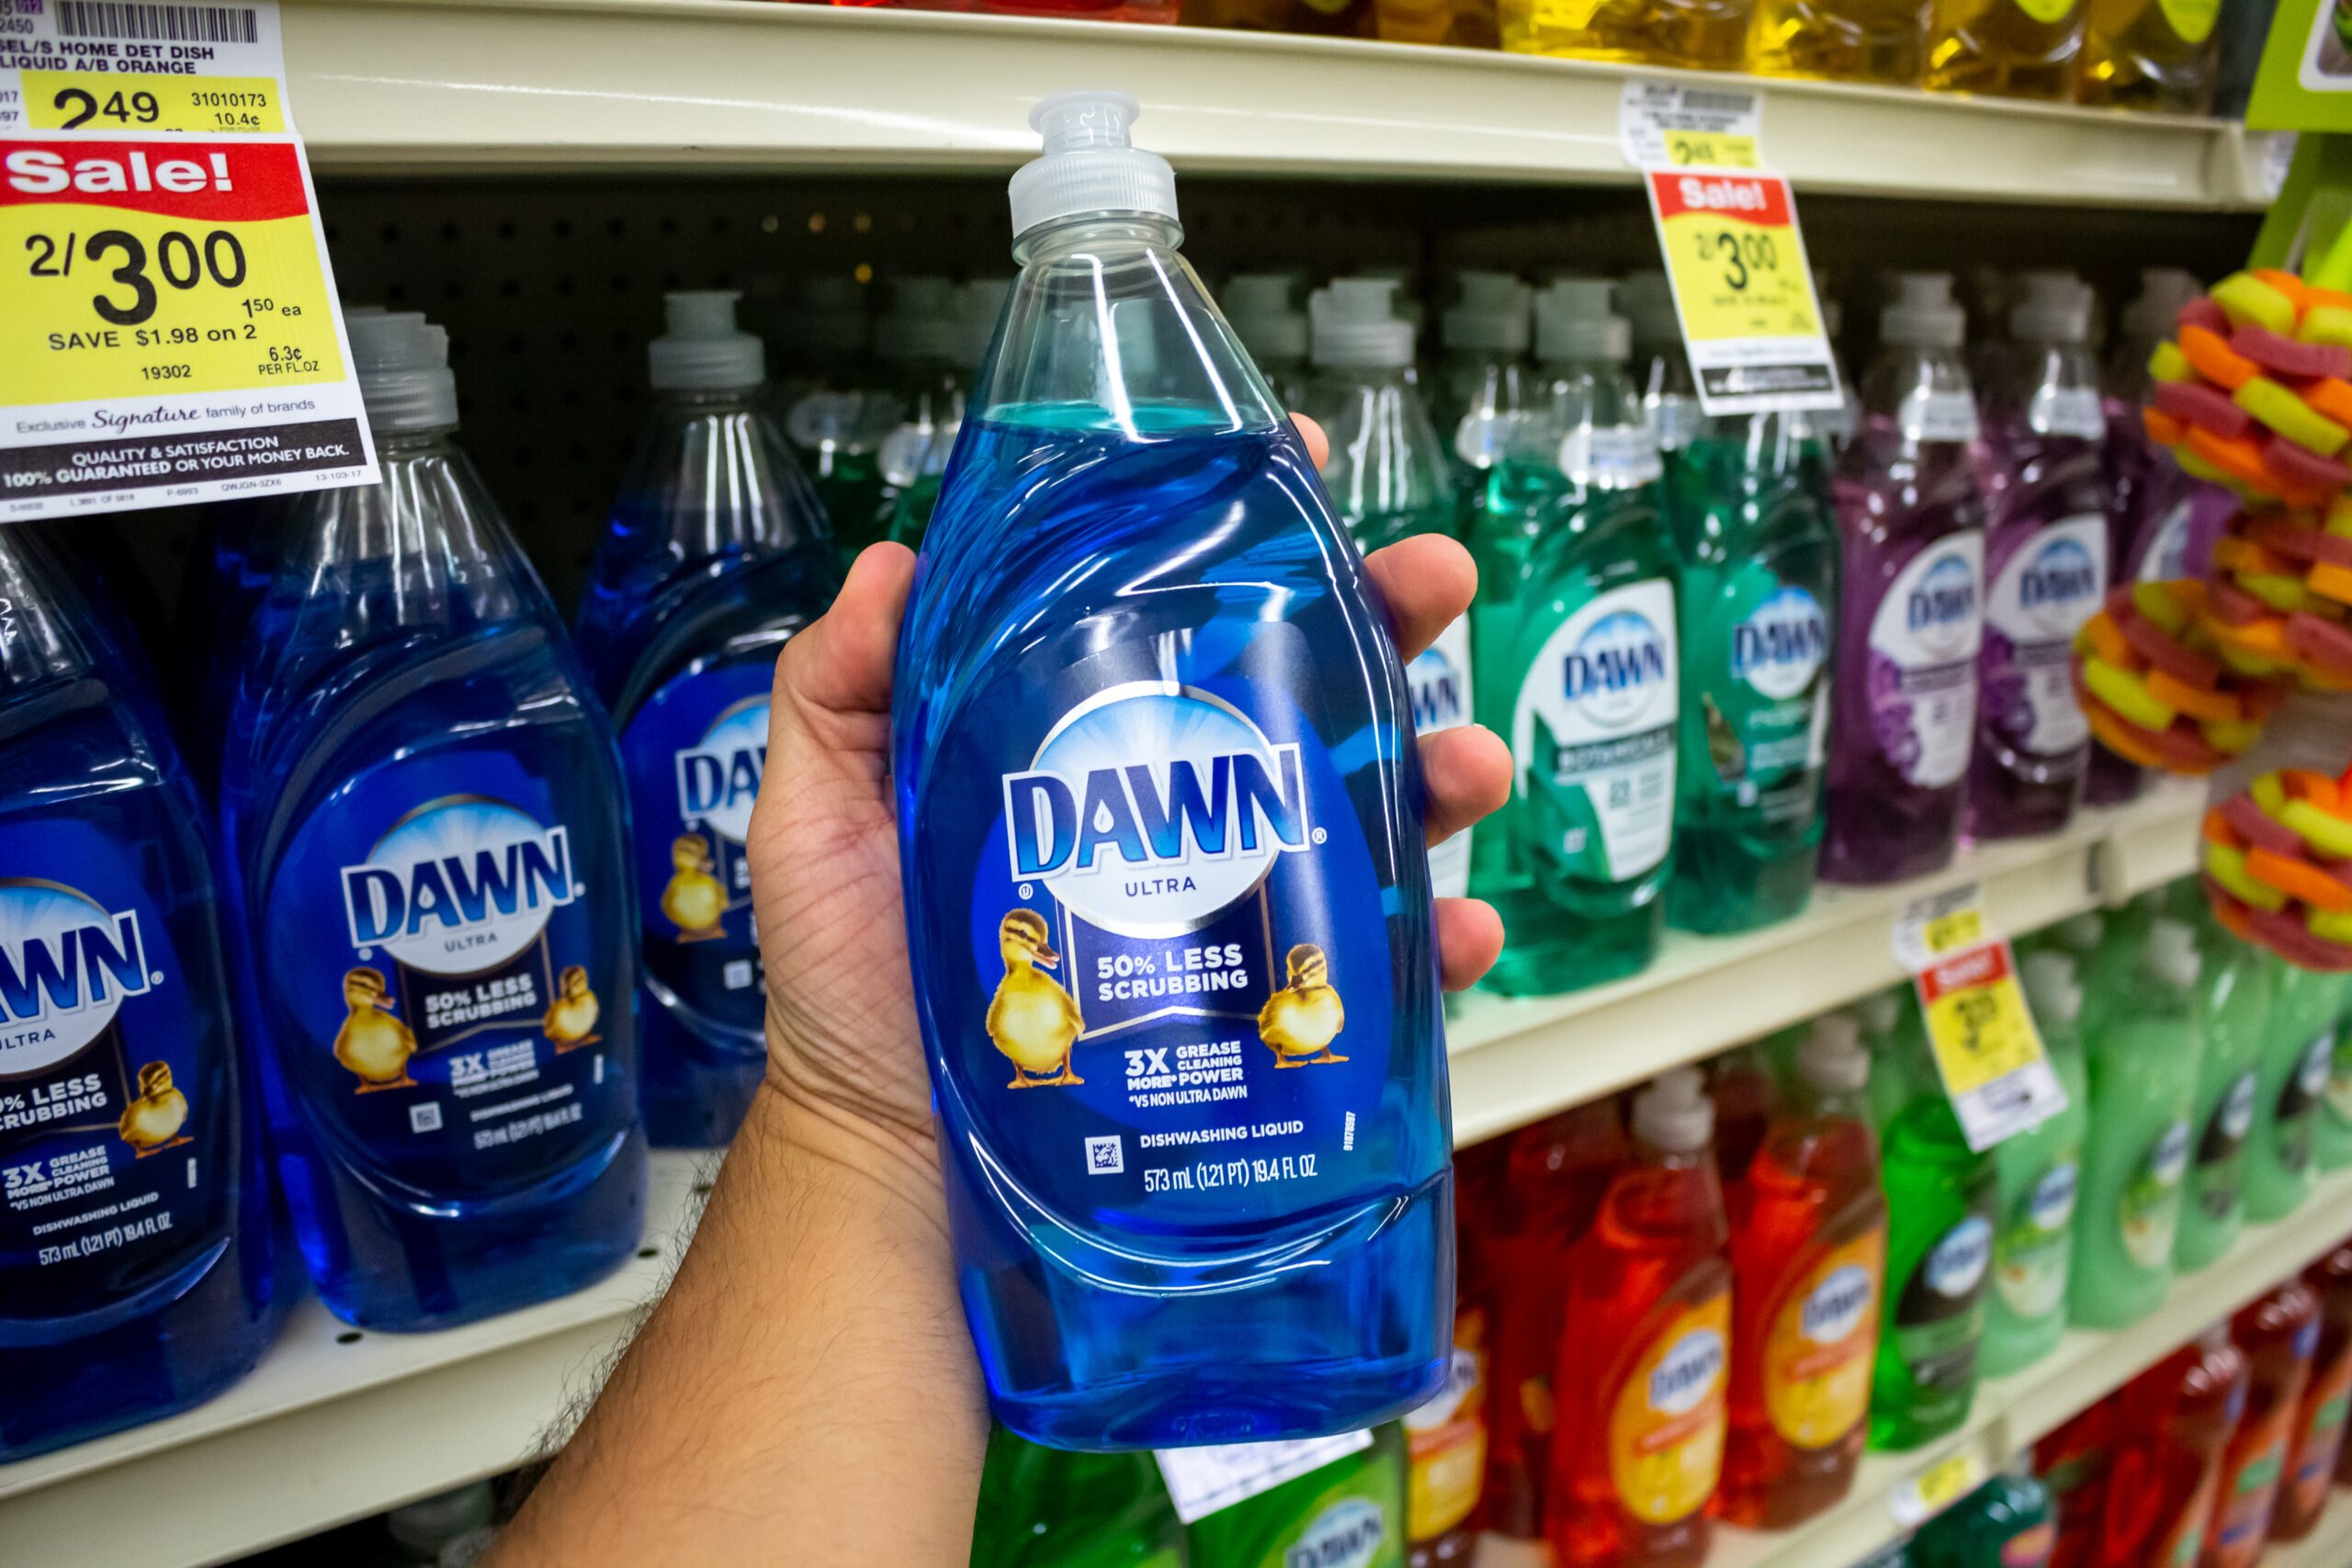 Dawn dish soap at the store - Can you use Dawn dish soap in RV black tanks?